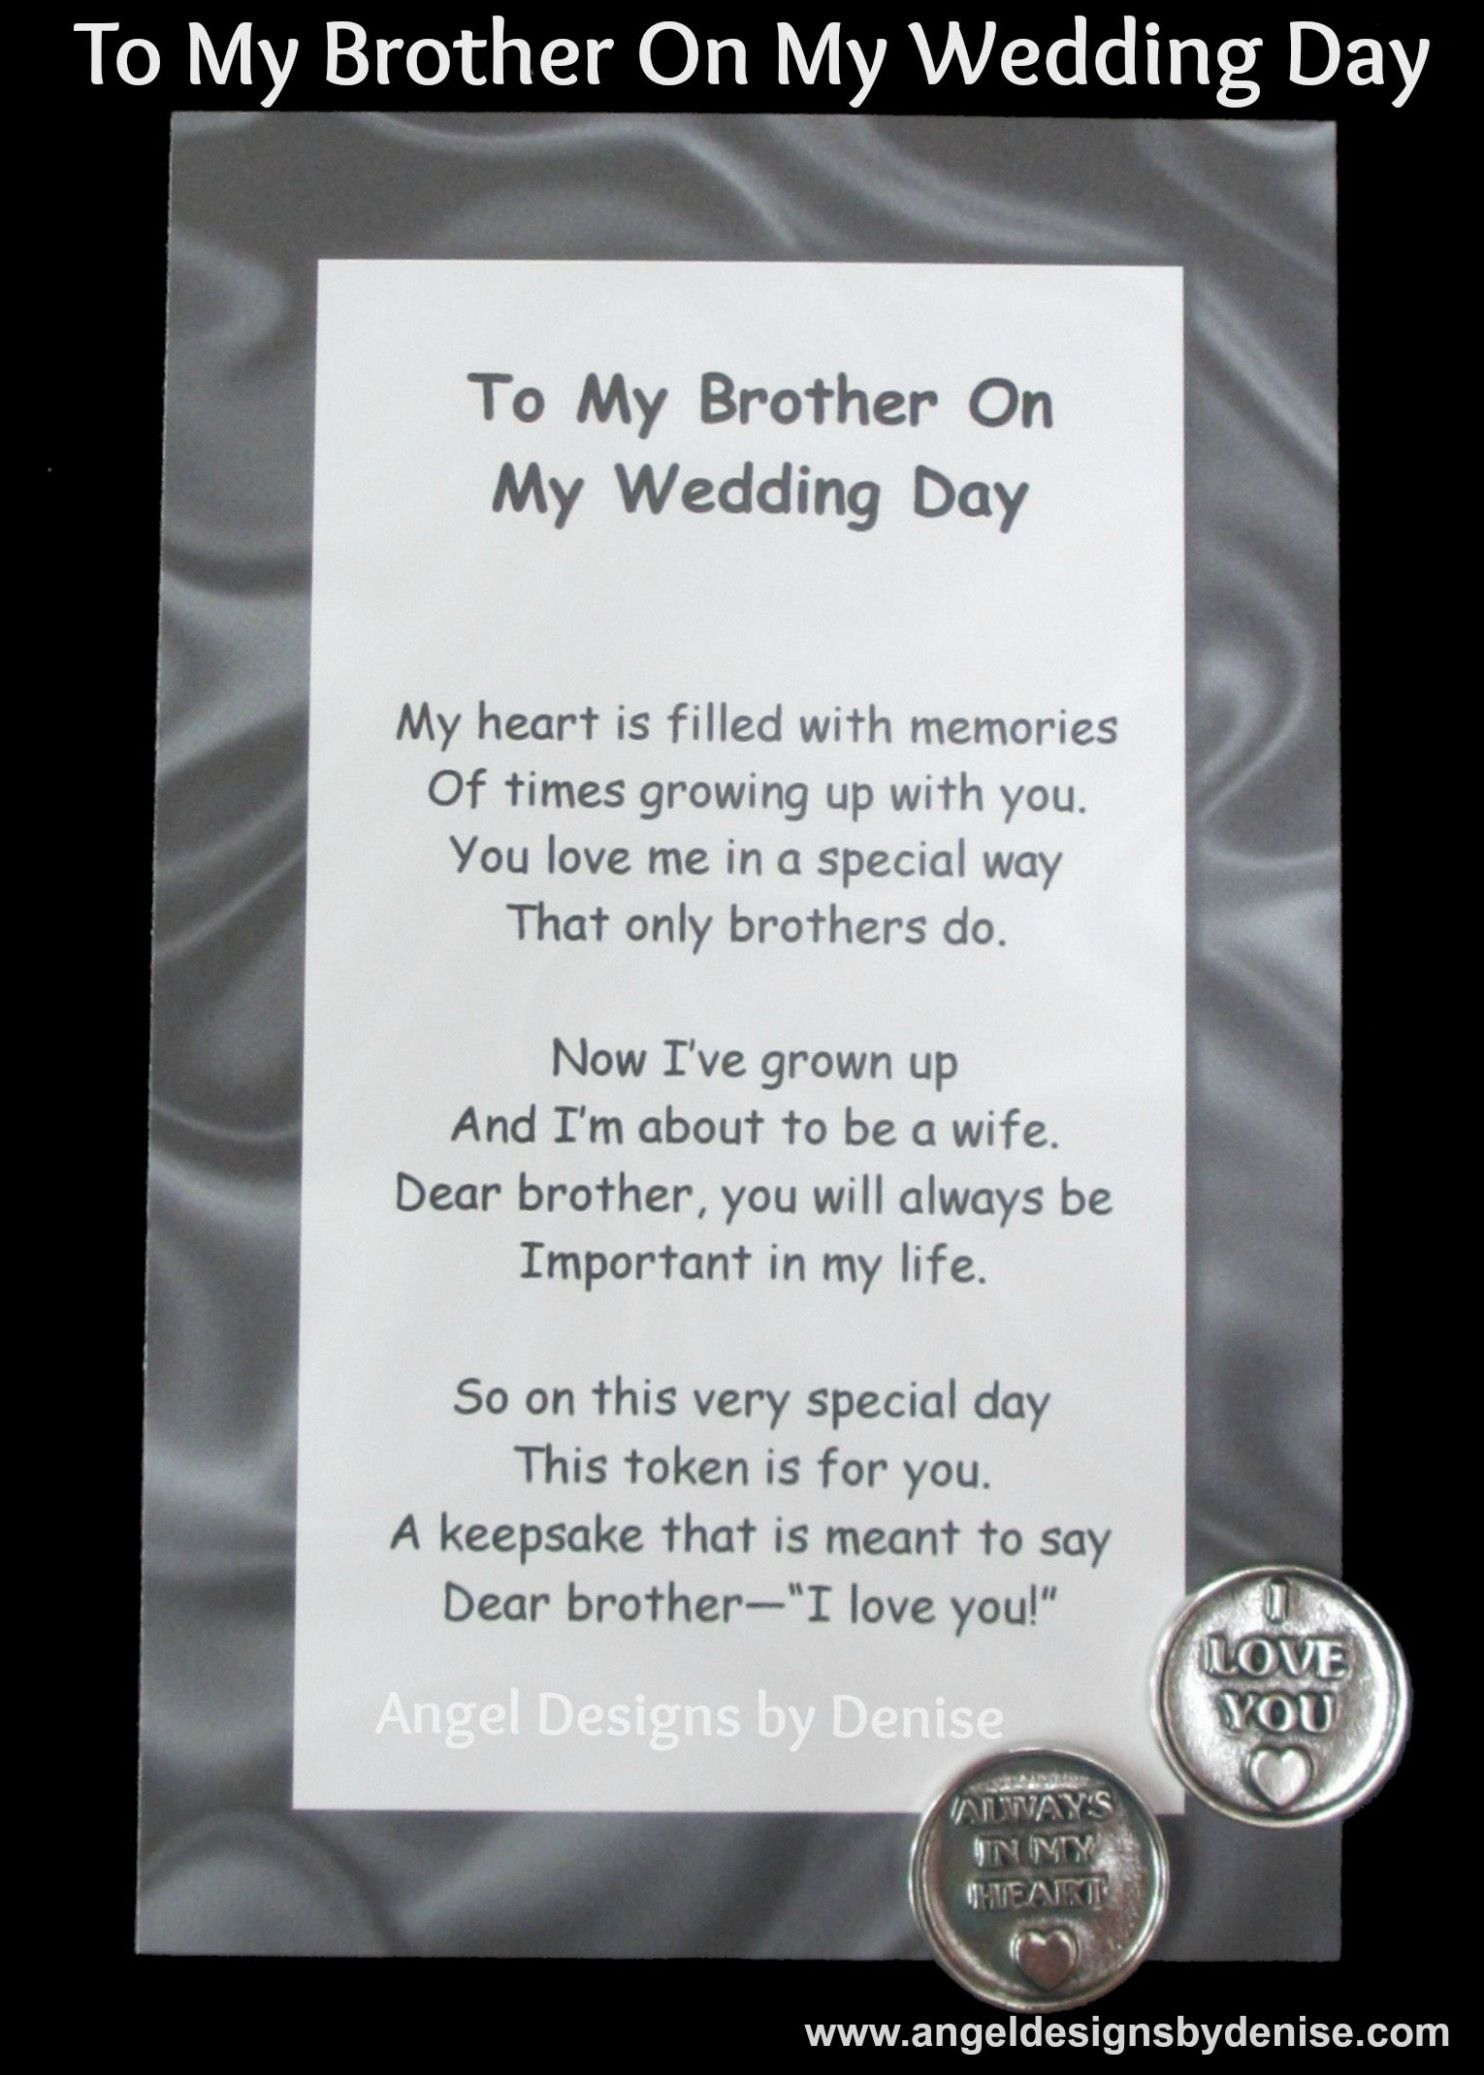 To My Brother On My Wedding Day Price 4 00 Each Description Give This Heartfelt Poem And Weddingg Wedding Day Wishes Sister Wedding Gift Wedding Wishes Quotes